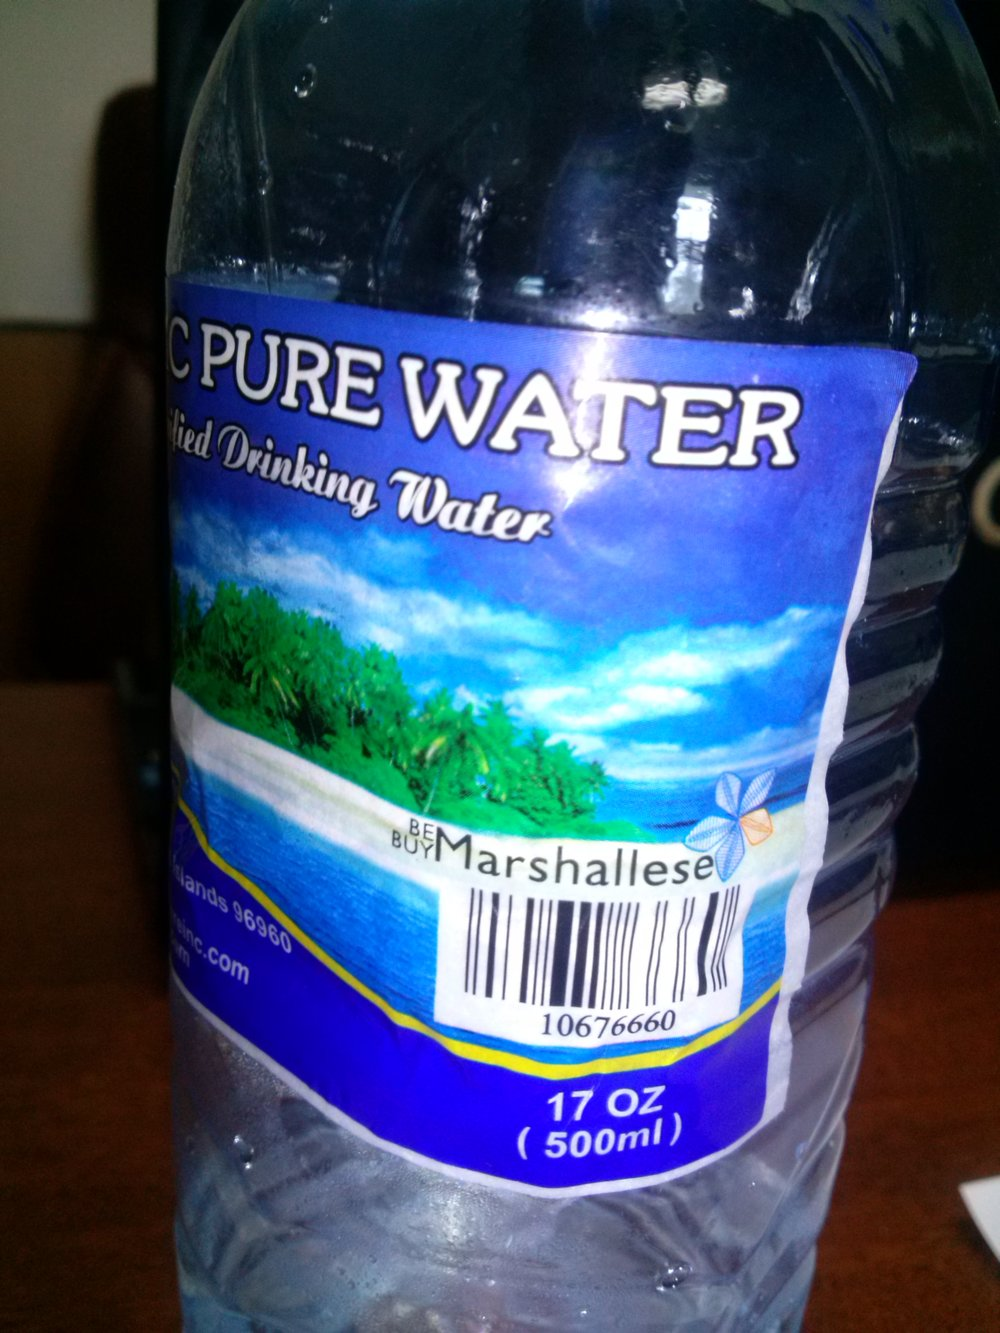 Since 1988, Pacific Pure Water Inc. (PPW) have been the leading producer of purified drinking water in the Marshall Islands. The plant in Majuro manufactures bottles and delivers drinking water to various homes and offices on Majuro Atoll as well as all over the Marshall Islands.